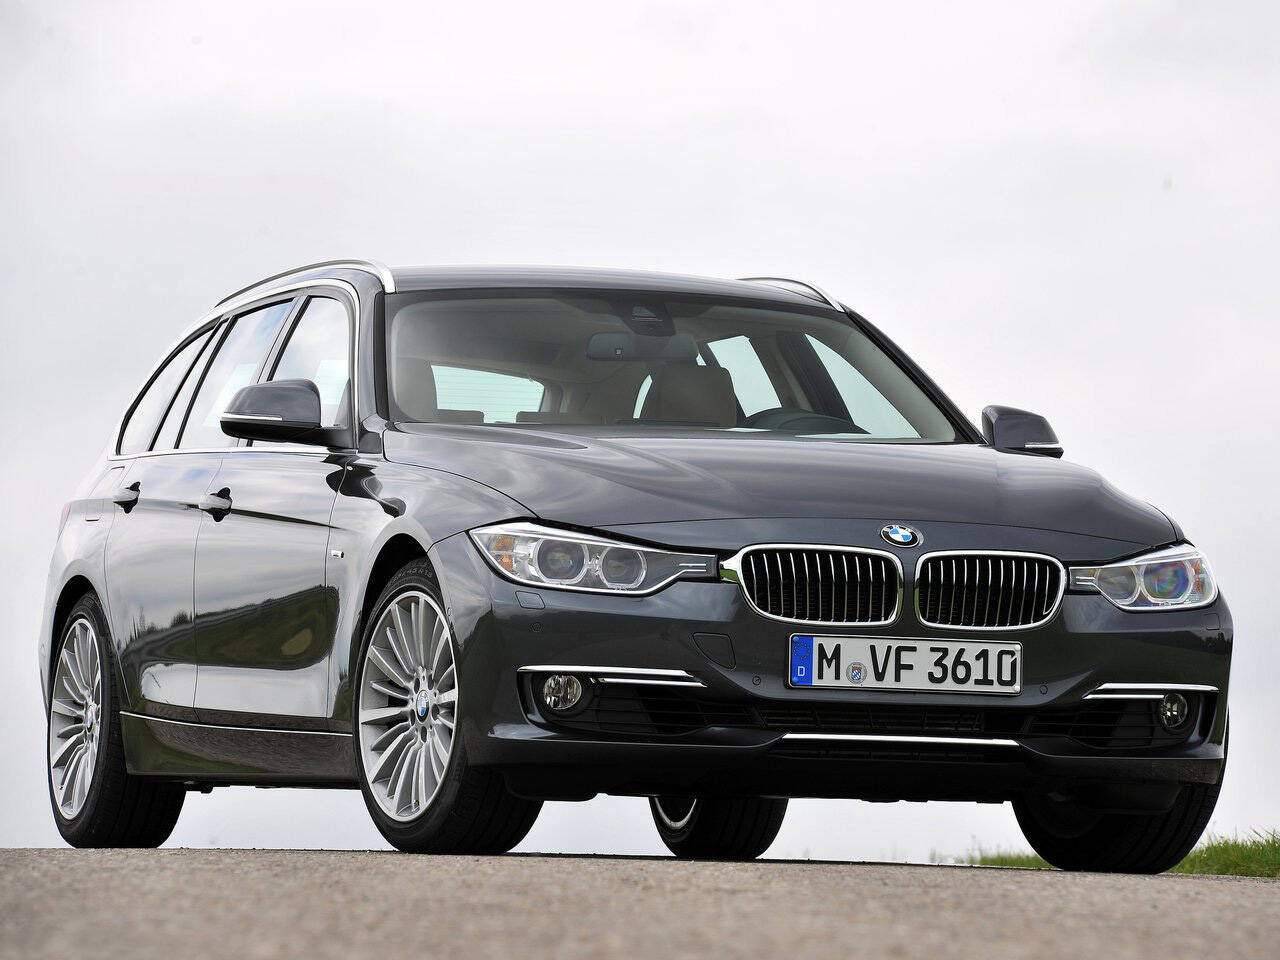 fiche technique bmw 320d touring f31 2012 2015. Black Bedroom Furniture Sets. Home Design Ideas